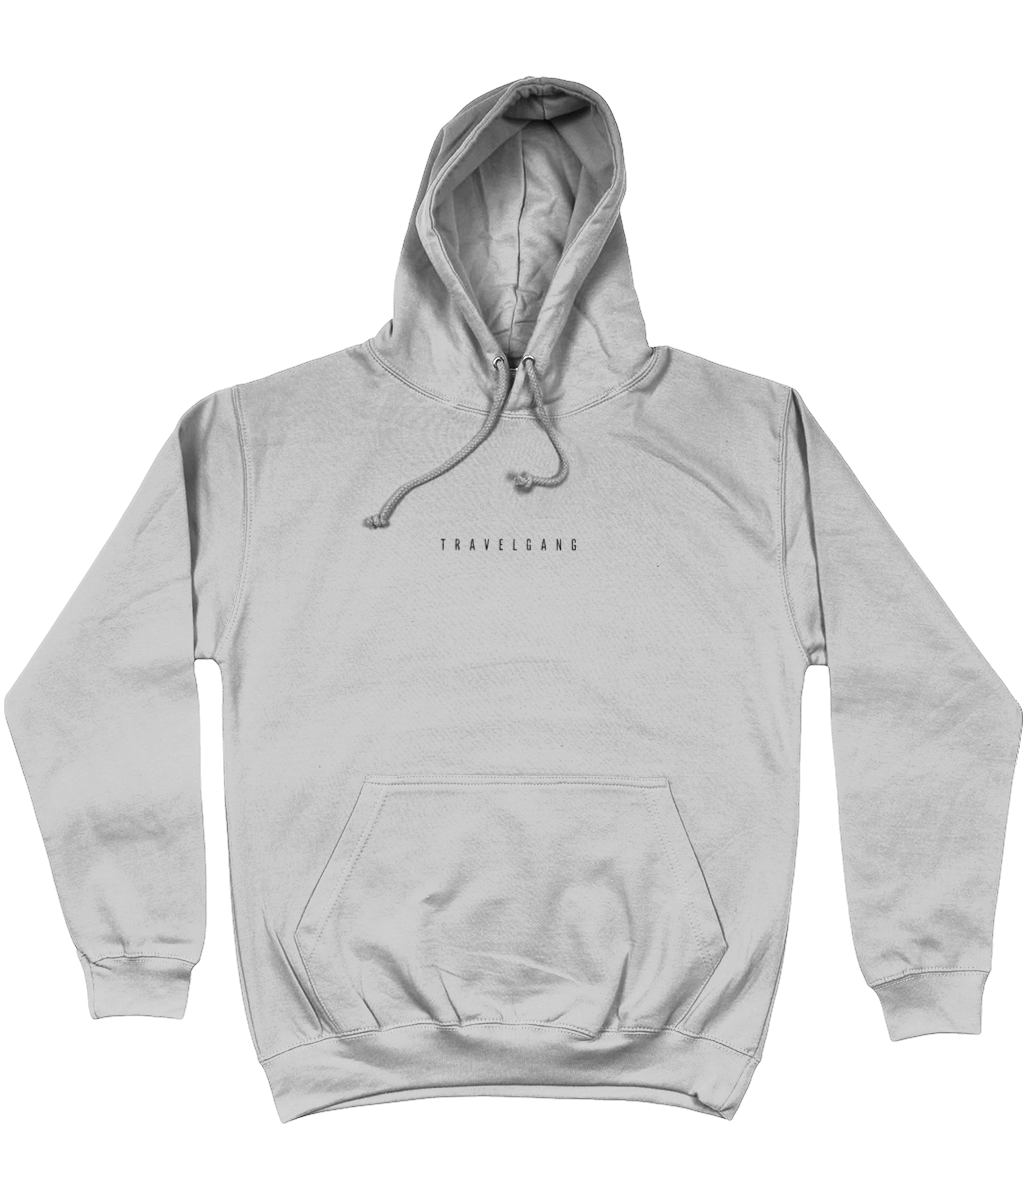 TG Casual  Hoody - Grey (Sold Out)